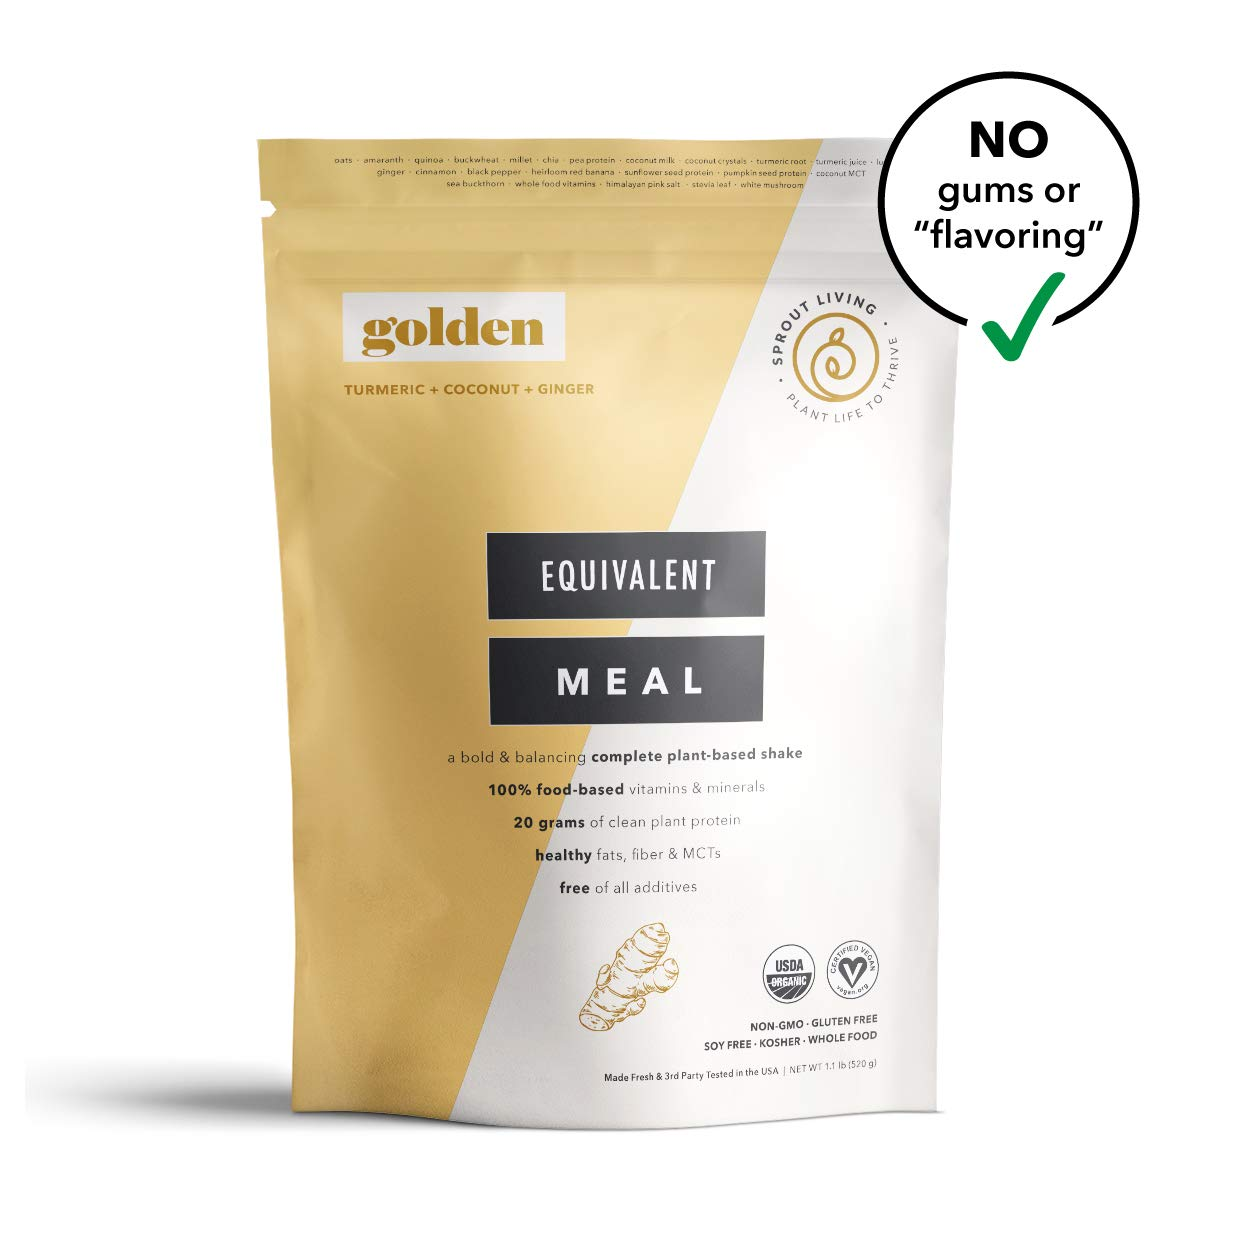 Sprout Living Equivalent Meal, Golden (Turmeric) Flavor, Plant-Based Organic Meal Replacement, 20 Grams Plant Protein, No Additives, Gluten Free (520 Grams, 8 Servings)